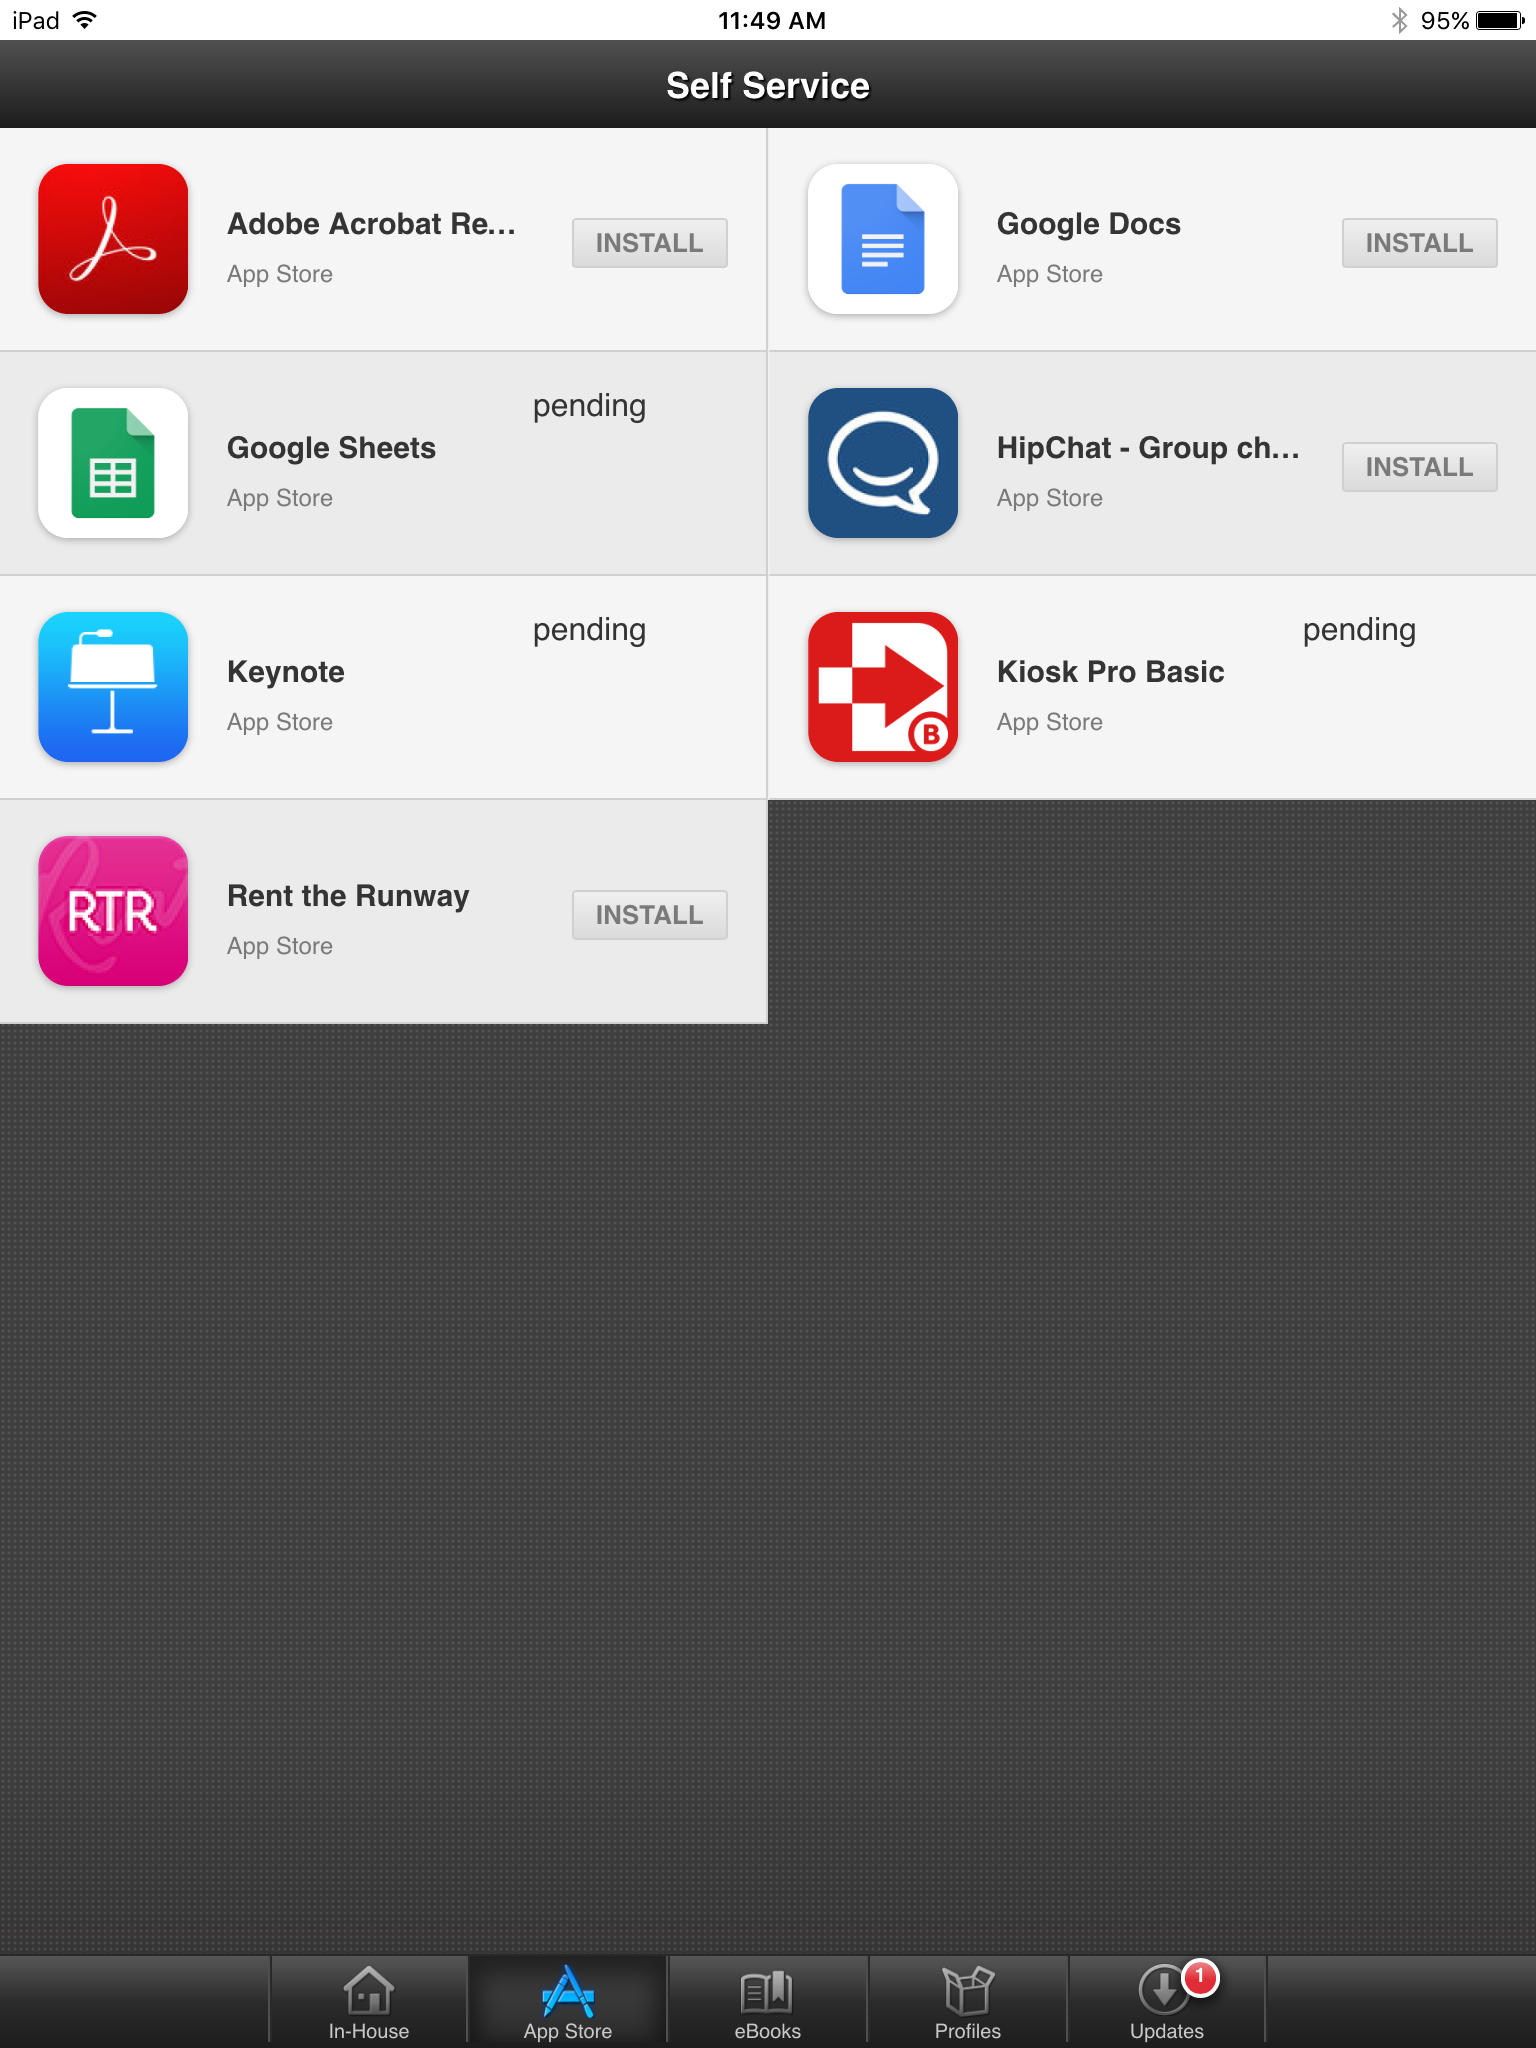 Self Service Purchased Apps status Pending  | Discussion